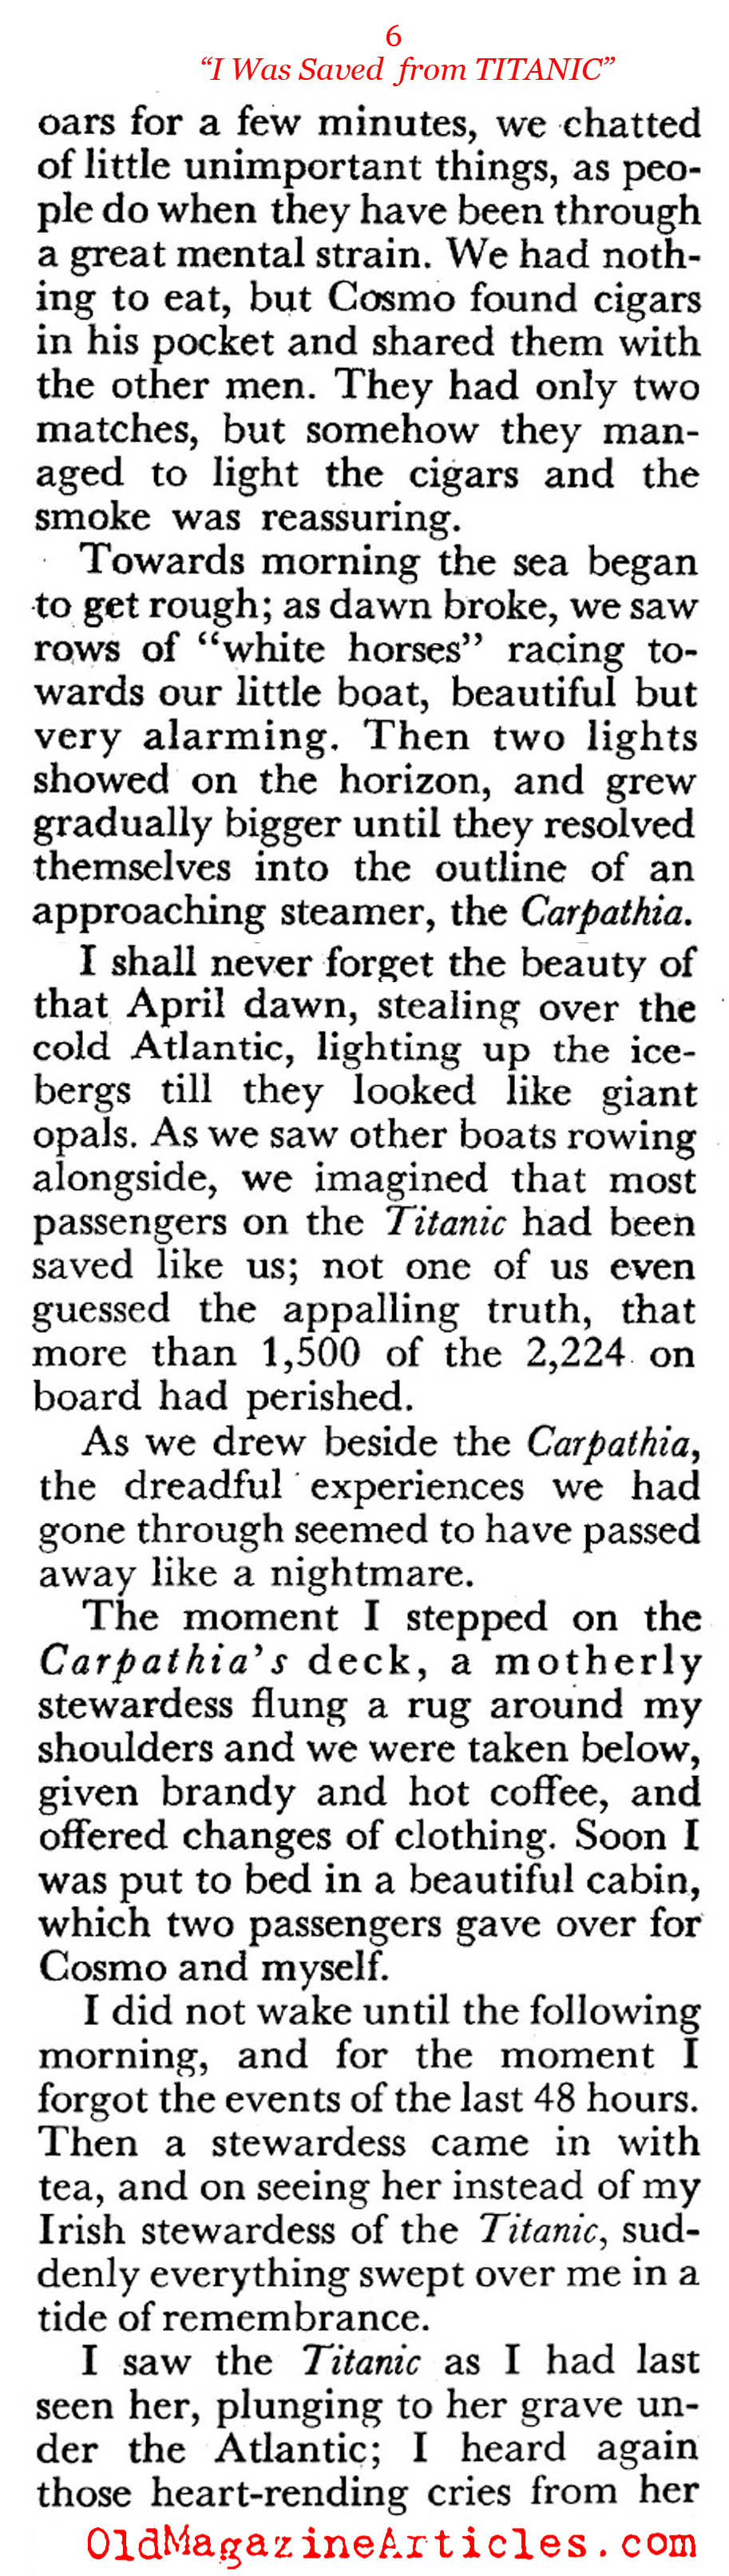 How I was Saved  (Coronet Magazine, 1951)